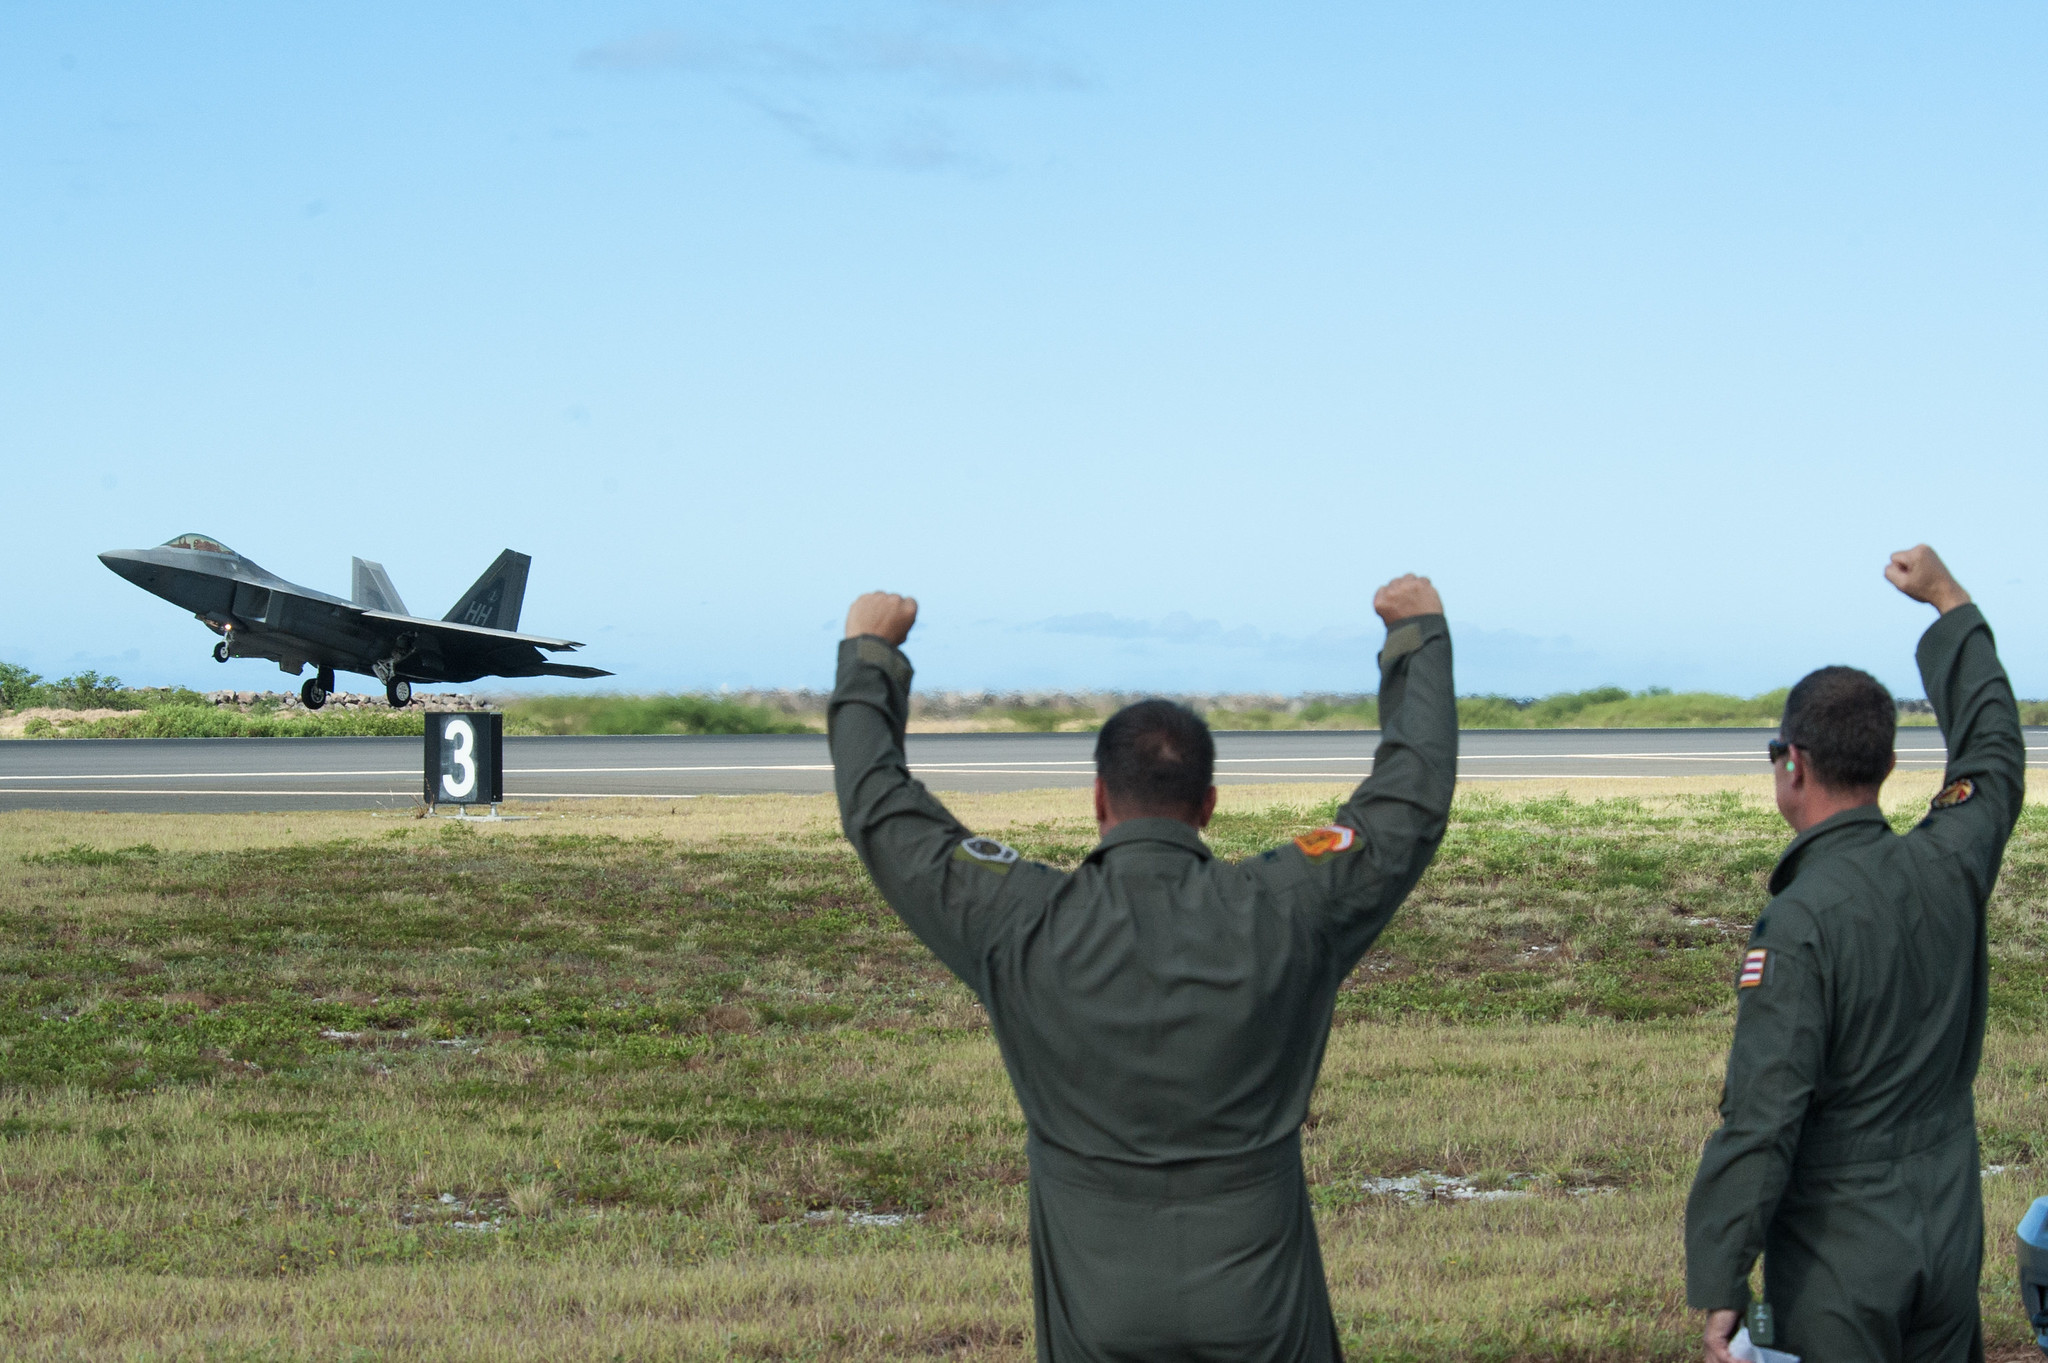 Hawaii Air National Guard pilots cheer on an F-22 Raptor at Joint Base Pearl Harbor-Hickam, Hawaii, on Aug. 21, 2019. (Senior Airman John Linzmeier/Air National Guard )